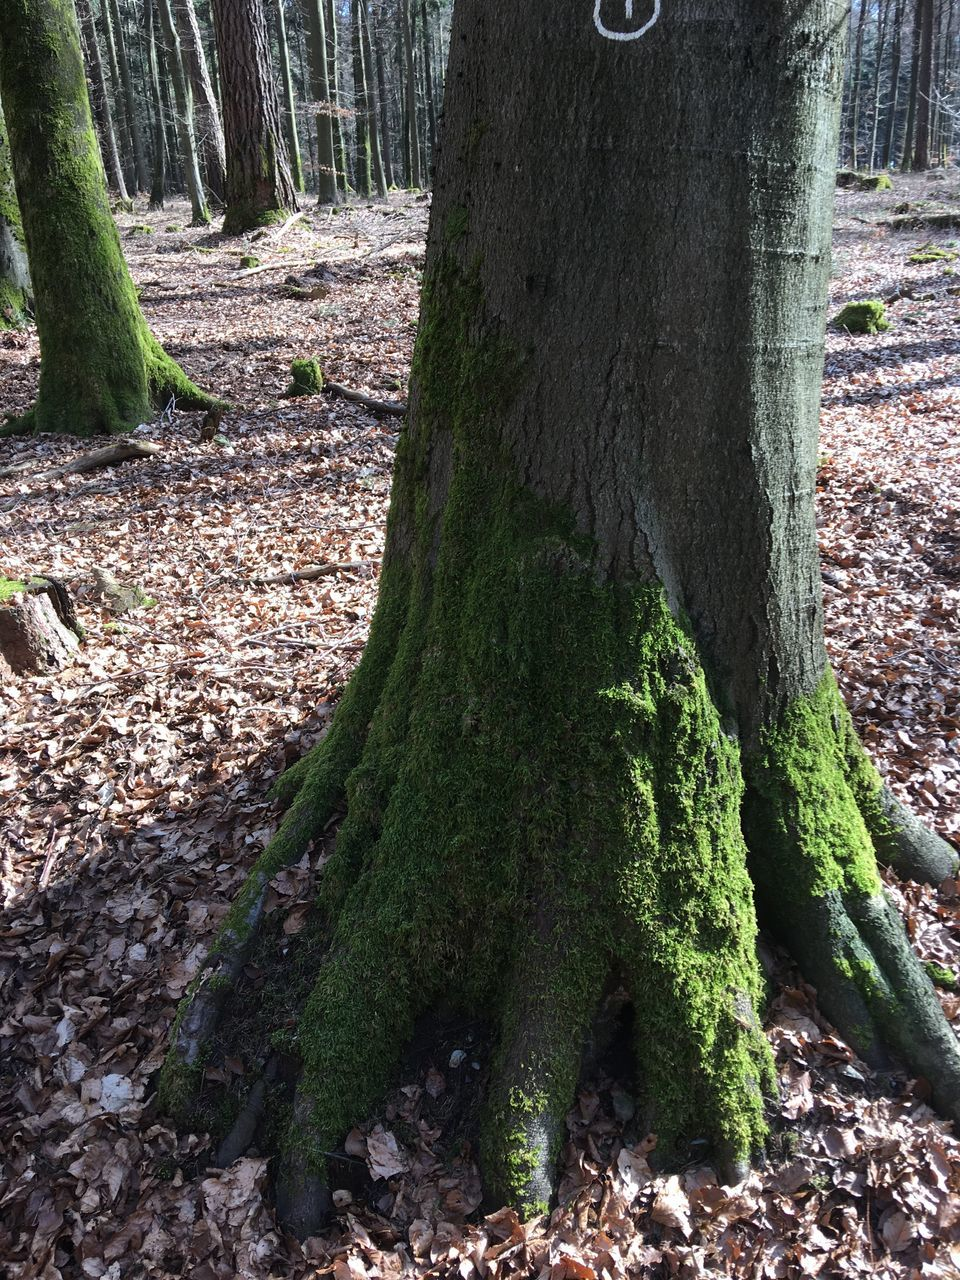 tree trunk, tree, forest, nature, day, outdoors, no people, woodland, growth, tranquility, moss, beauty in nature, close-up